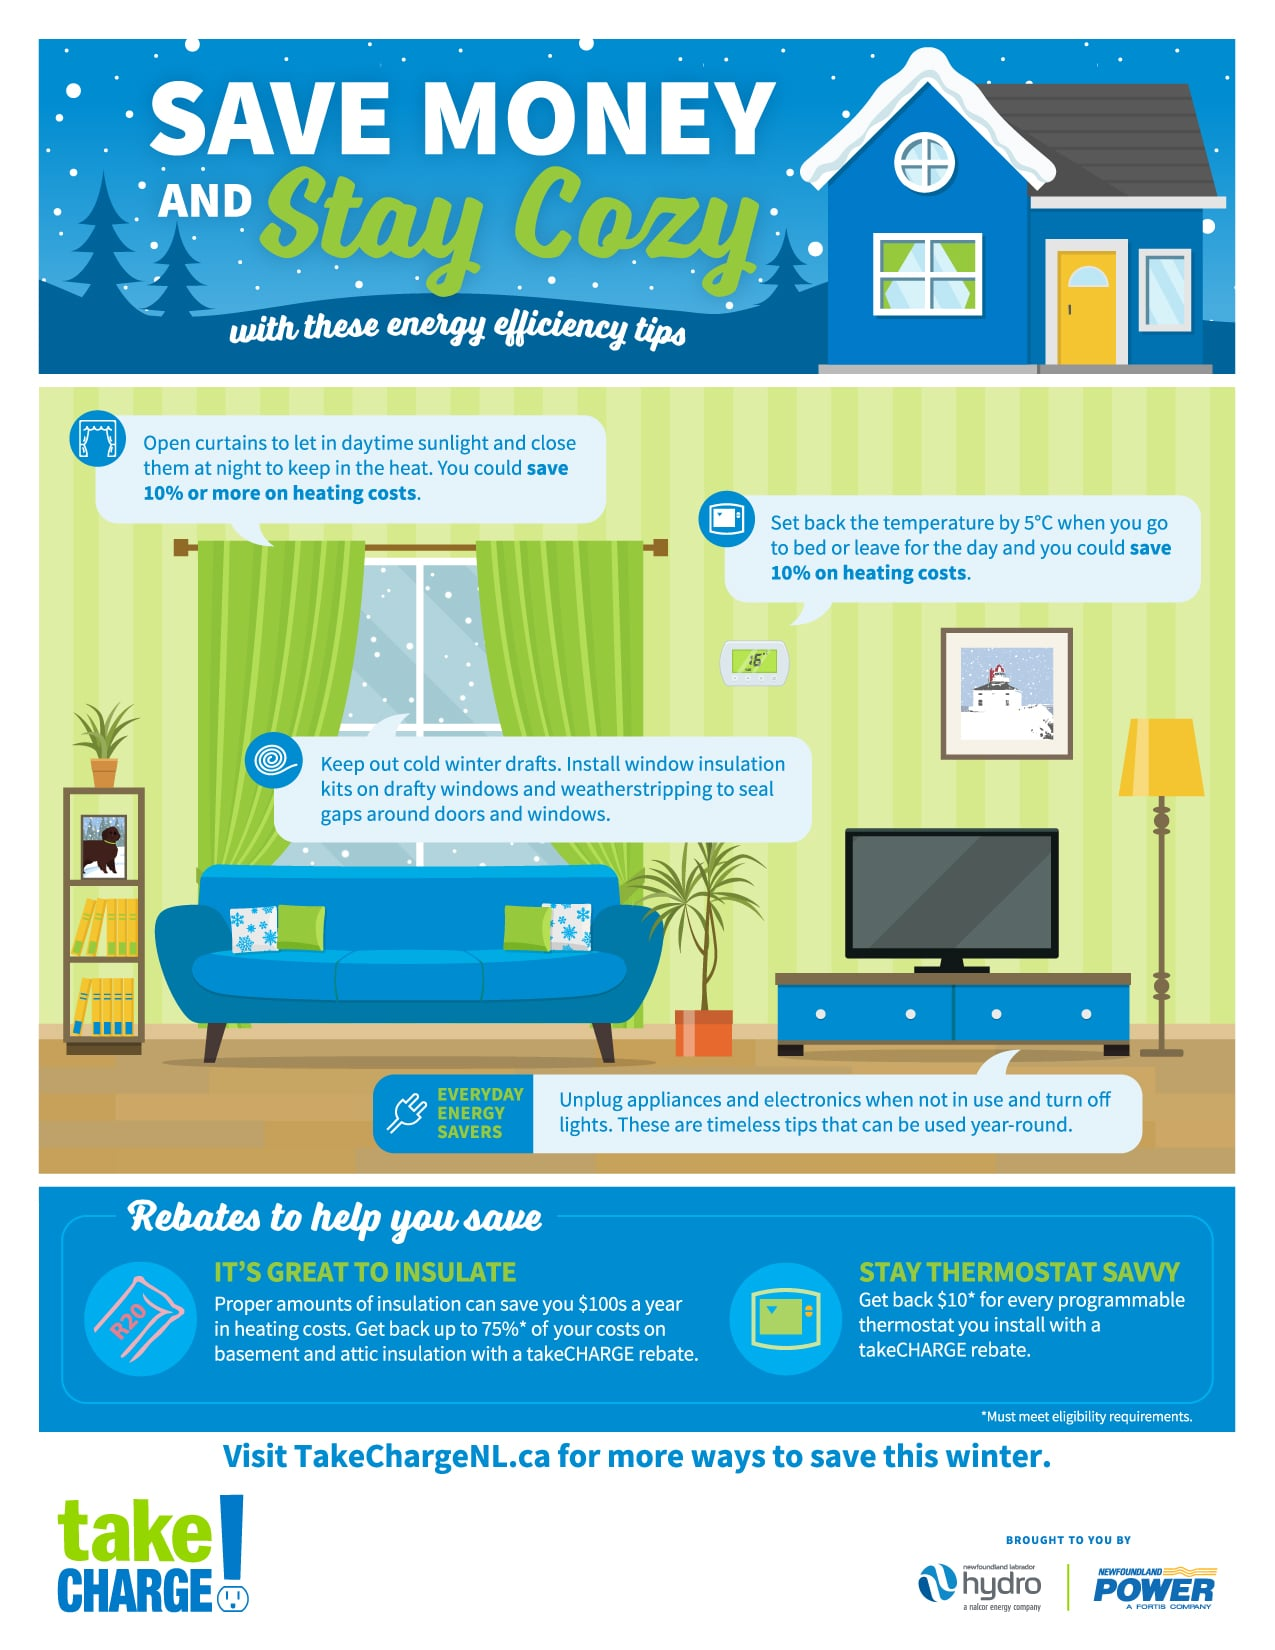 Energy Savings Tips to Save Money and Stay Cozy this Winter!